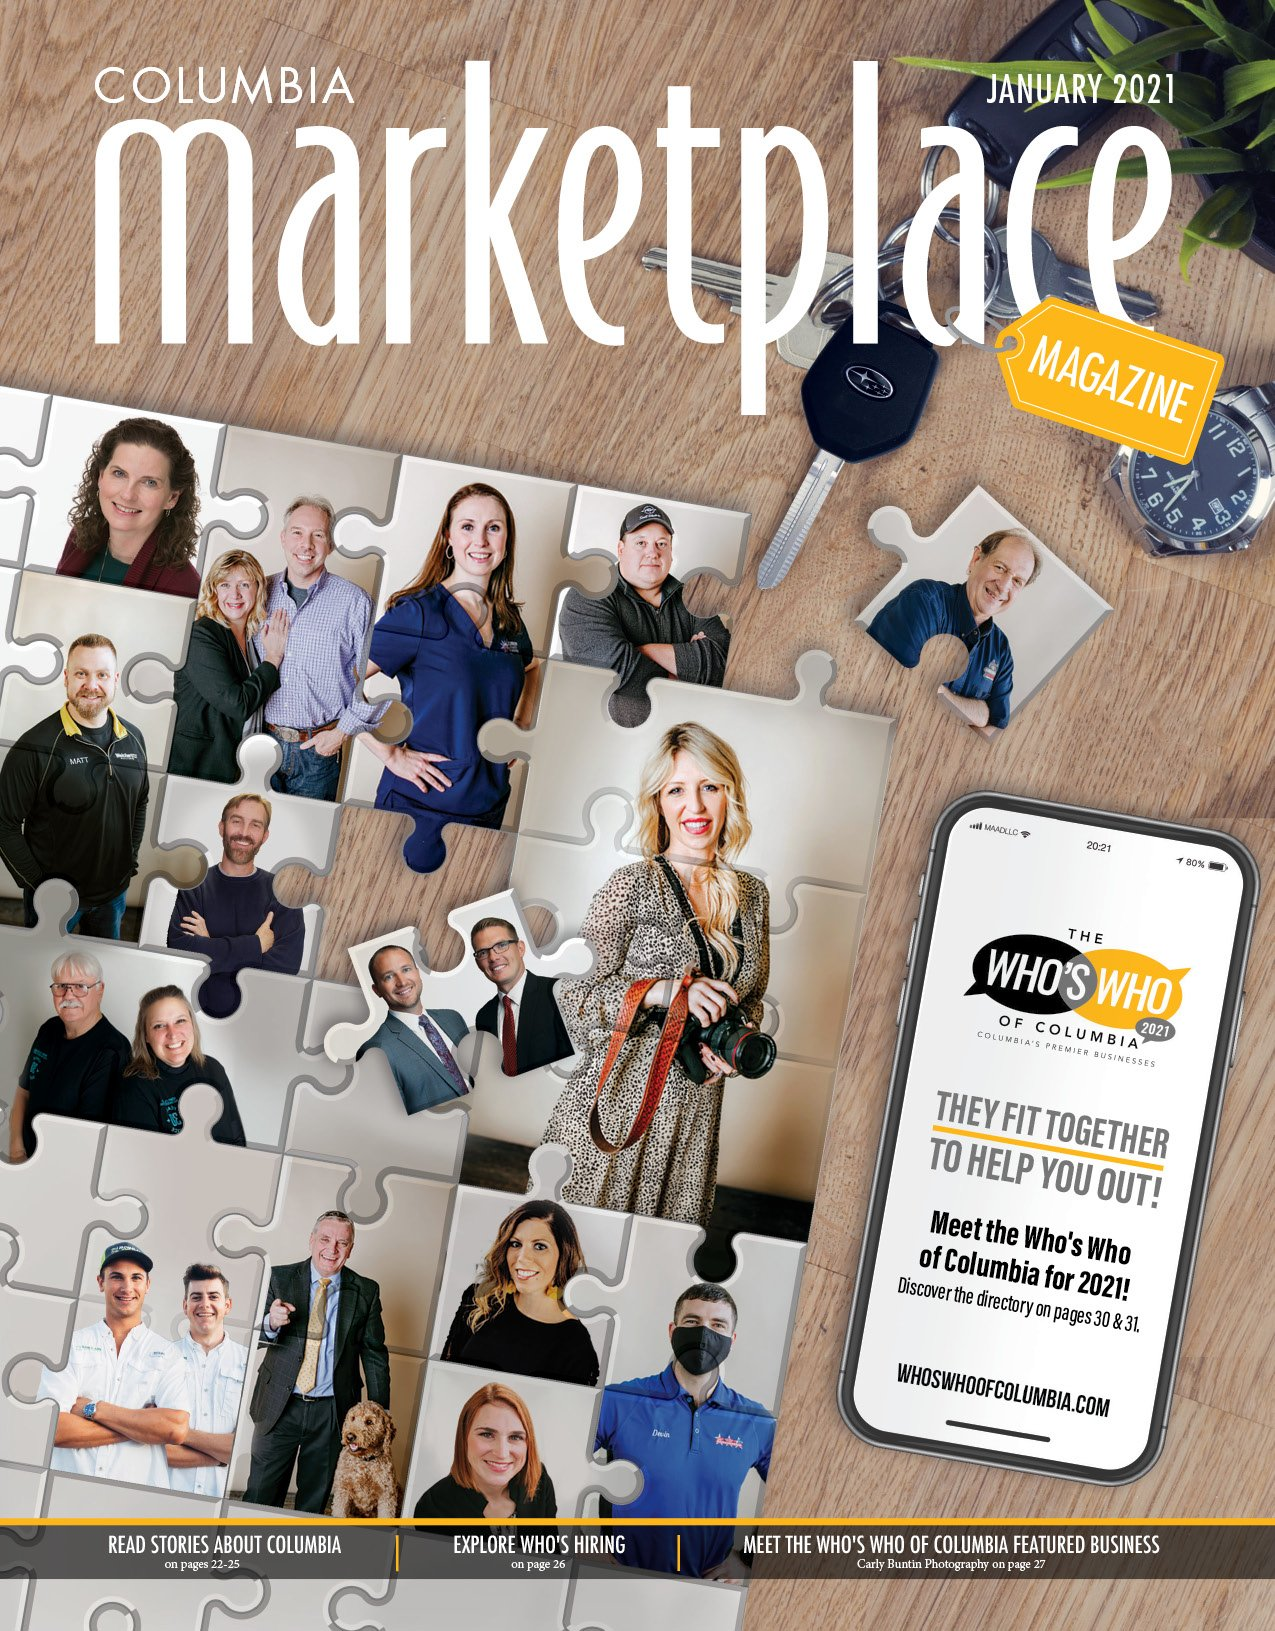 Marketplace Magazine by Modern Media Concepts January 2021 Edition Whos Who of Columbia Missouri 1